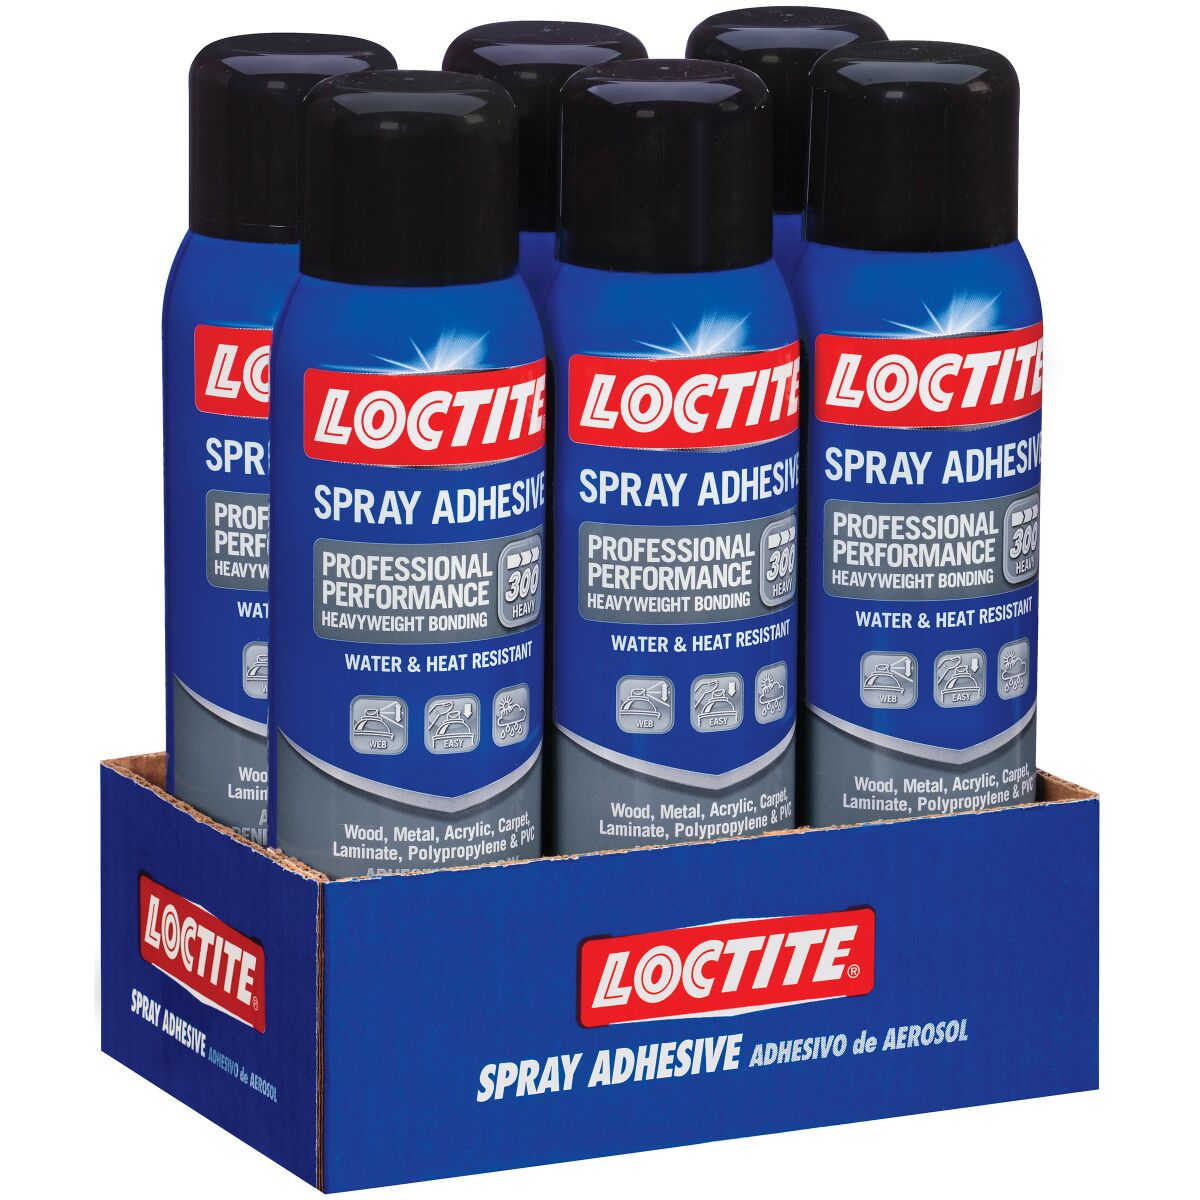 Loctite Spray Adhesive Professional Performance 13 5 Oz